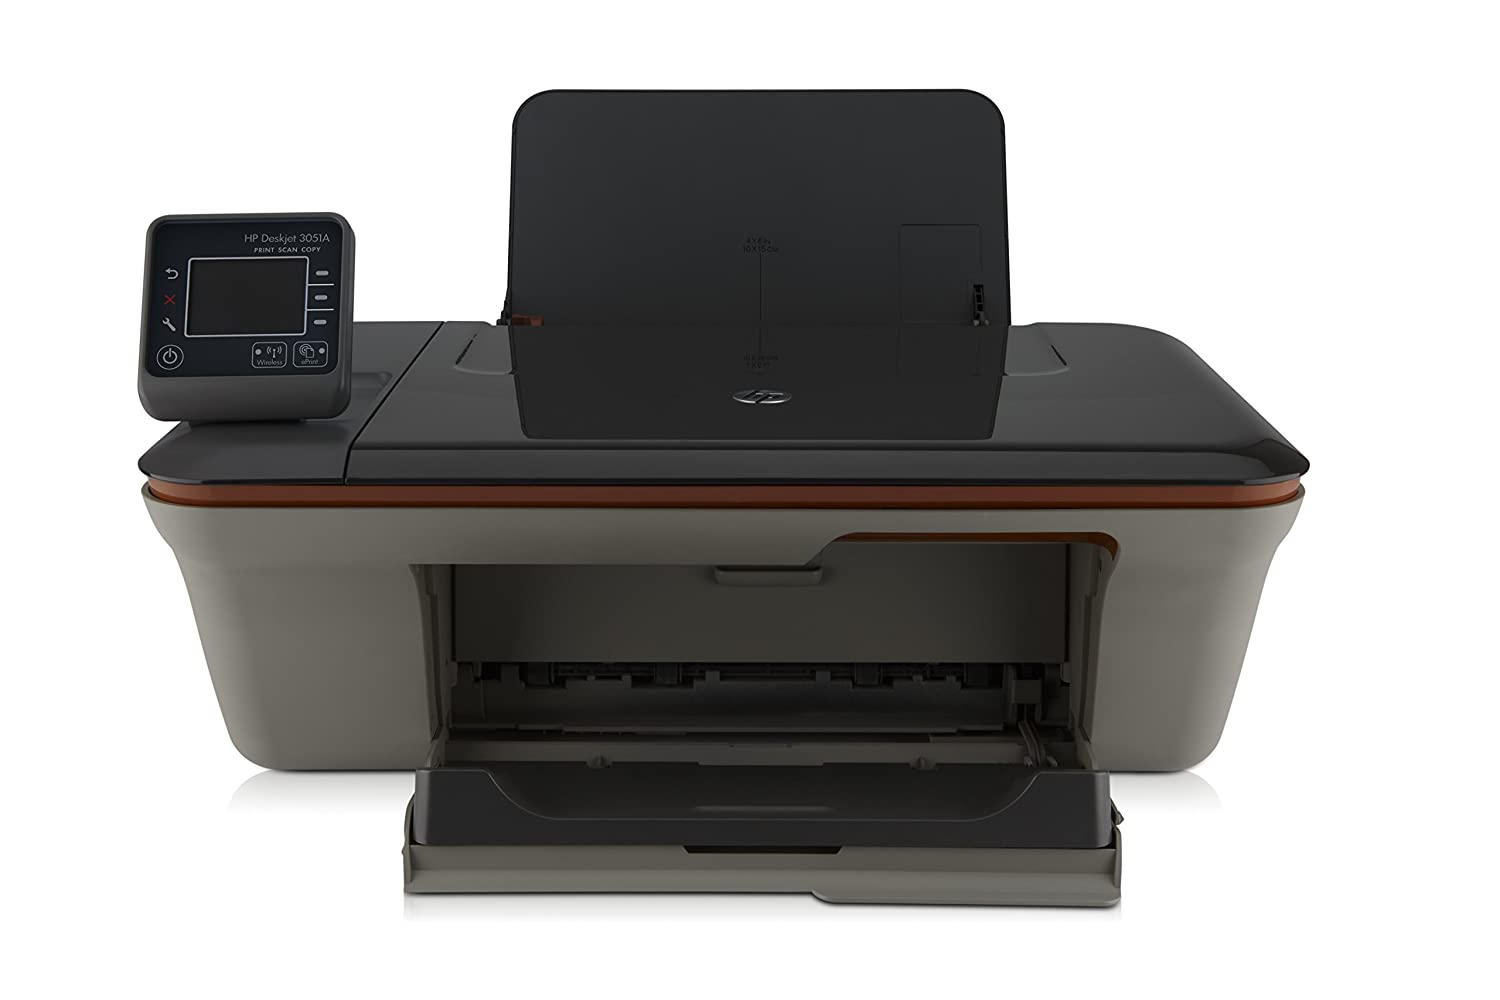 Amazon.com: HP Deskjet 3051 A All-in-One Printer j611h ...